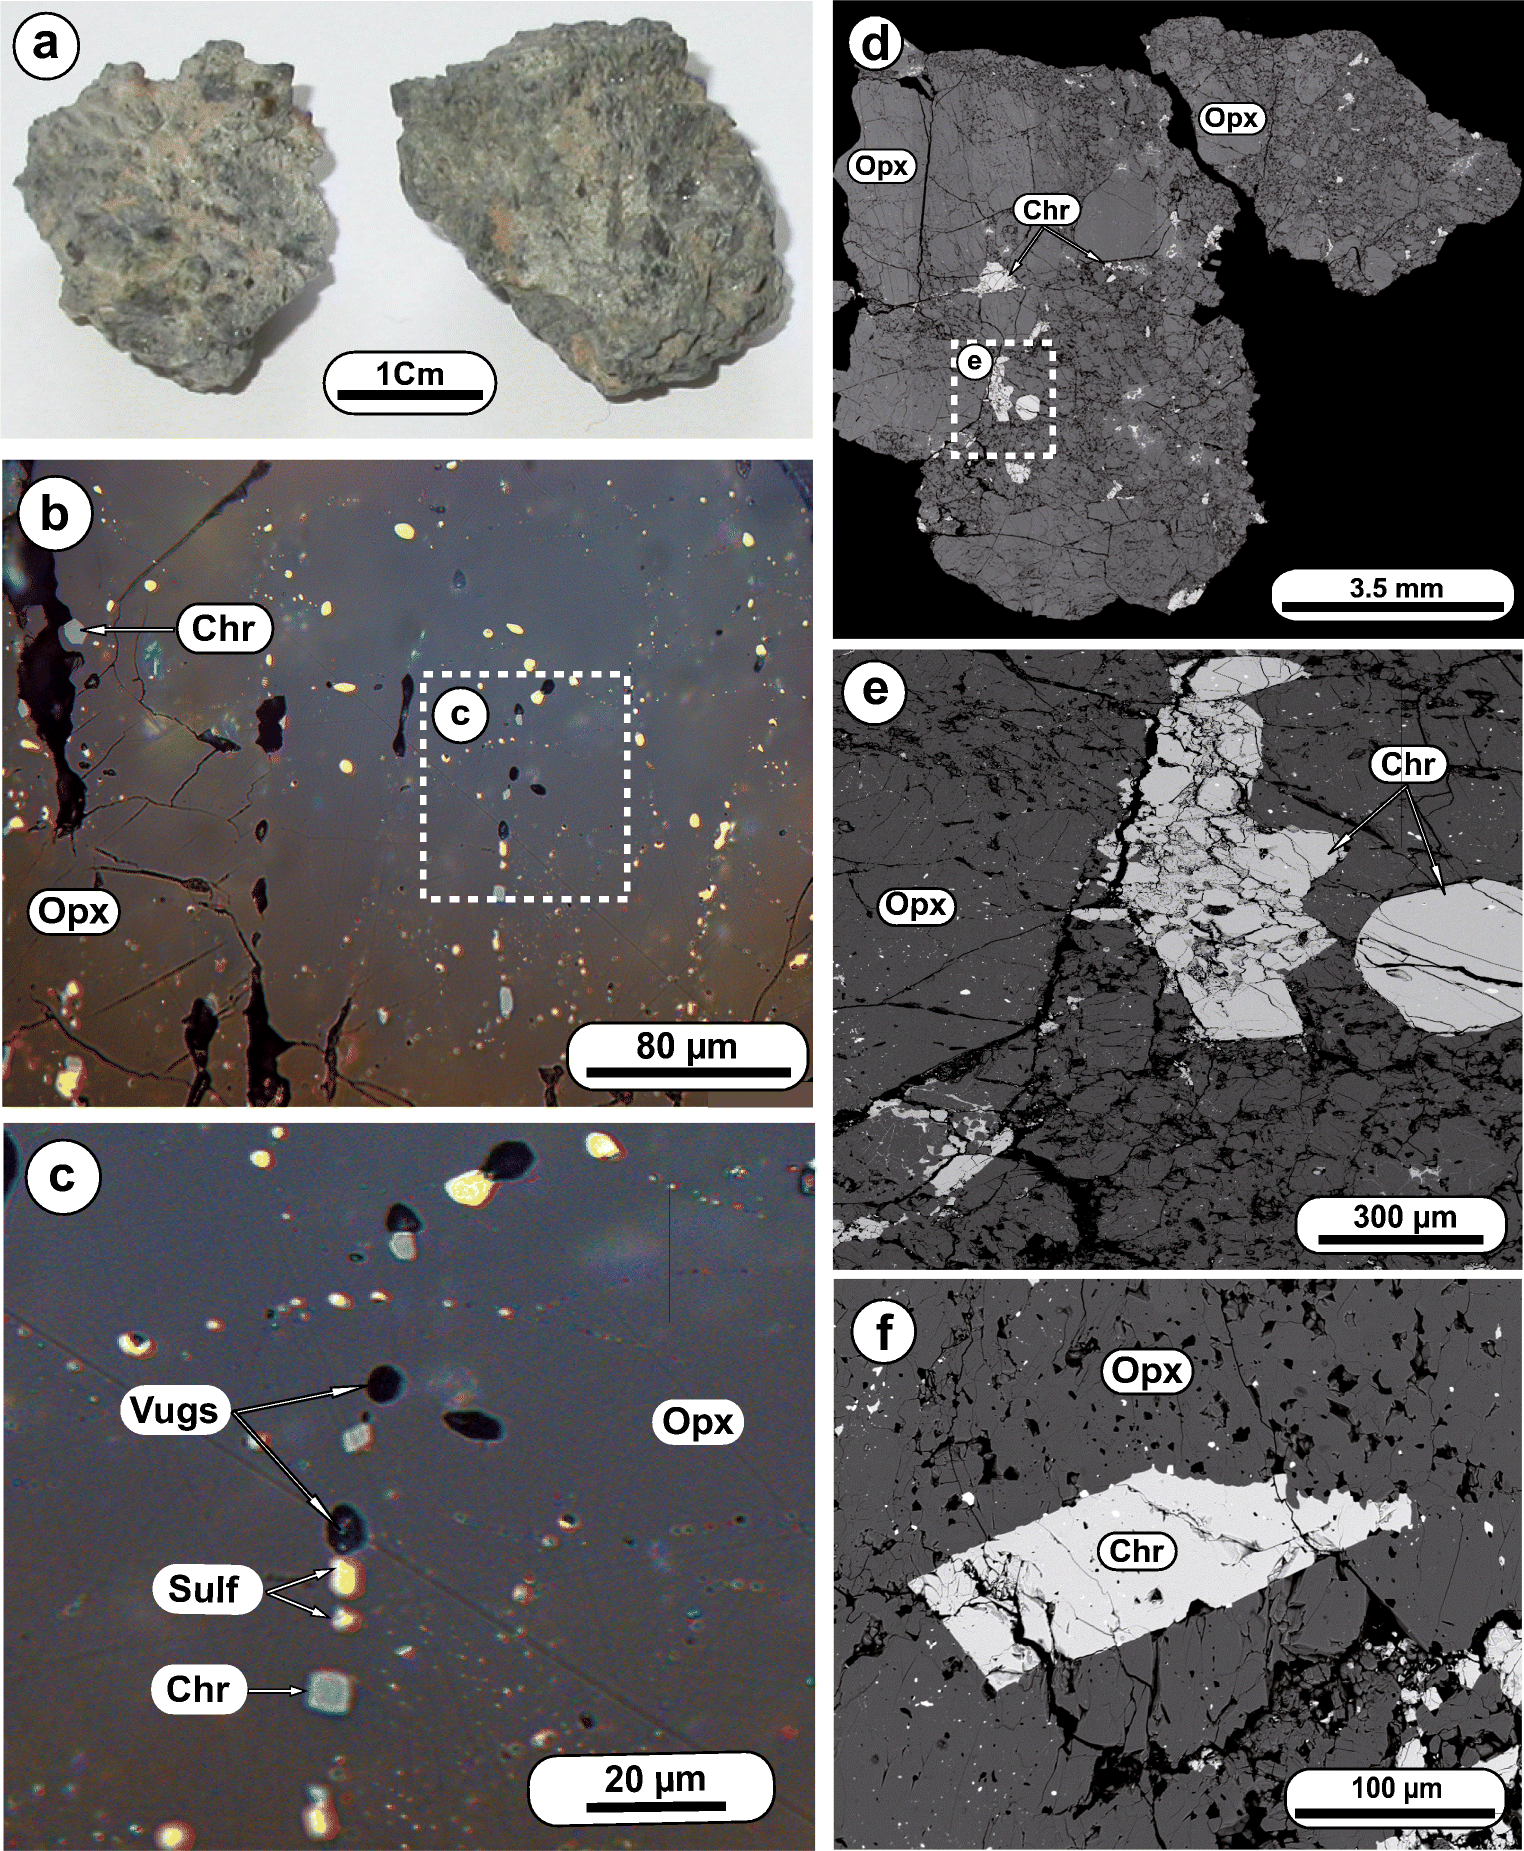 Petrology, mineralogy, and geochemistry of the olivine diogenite NWA